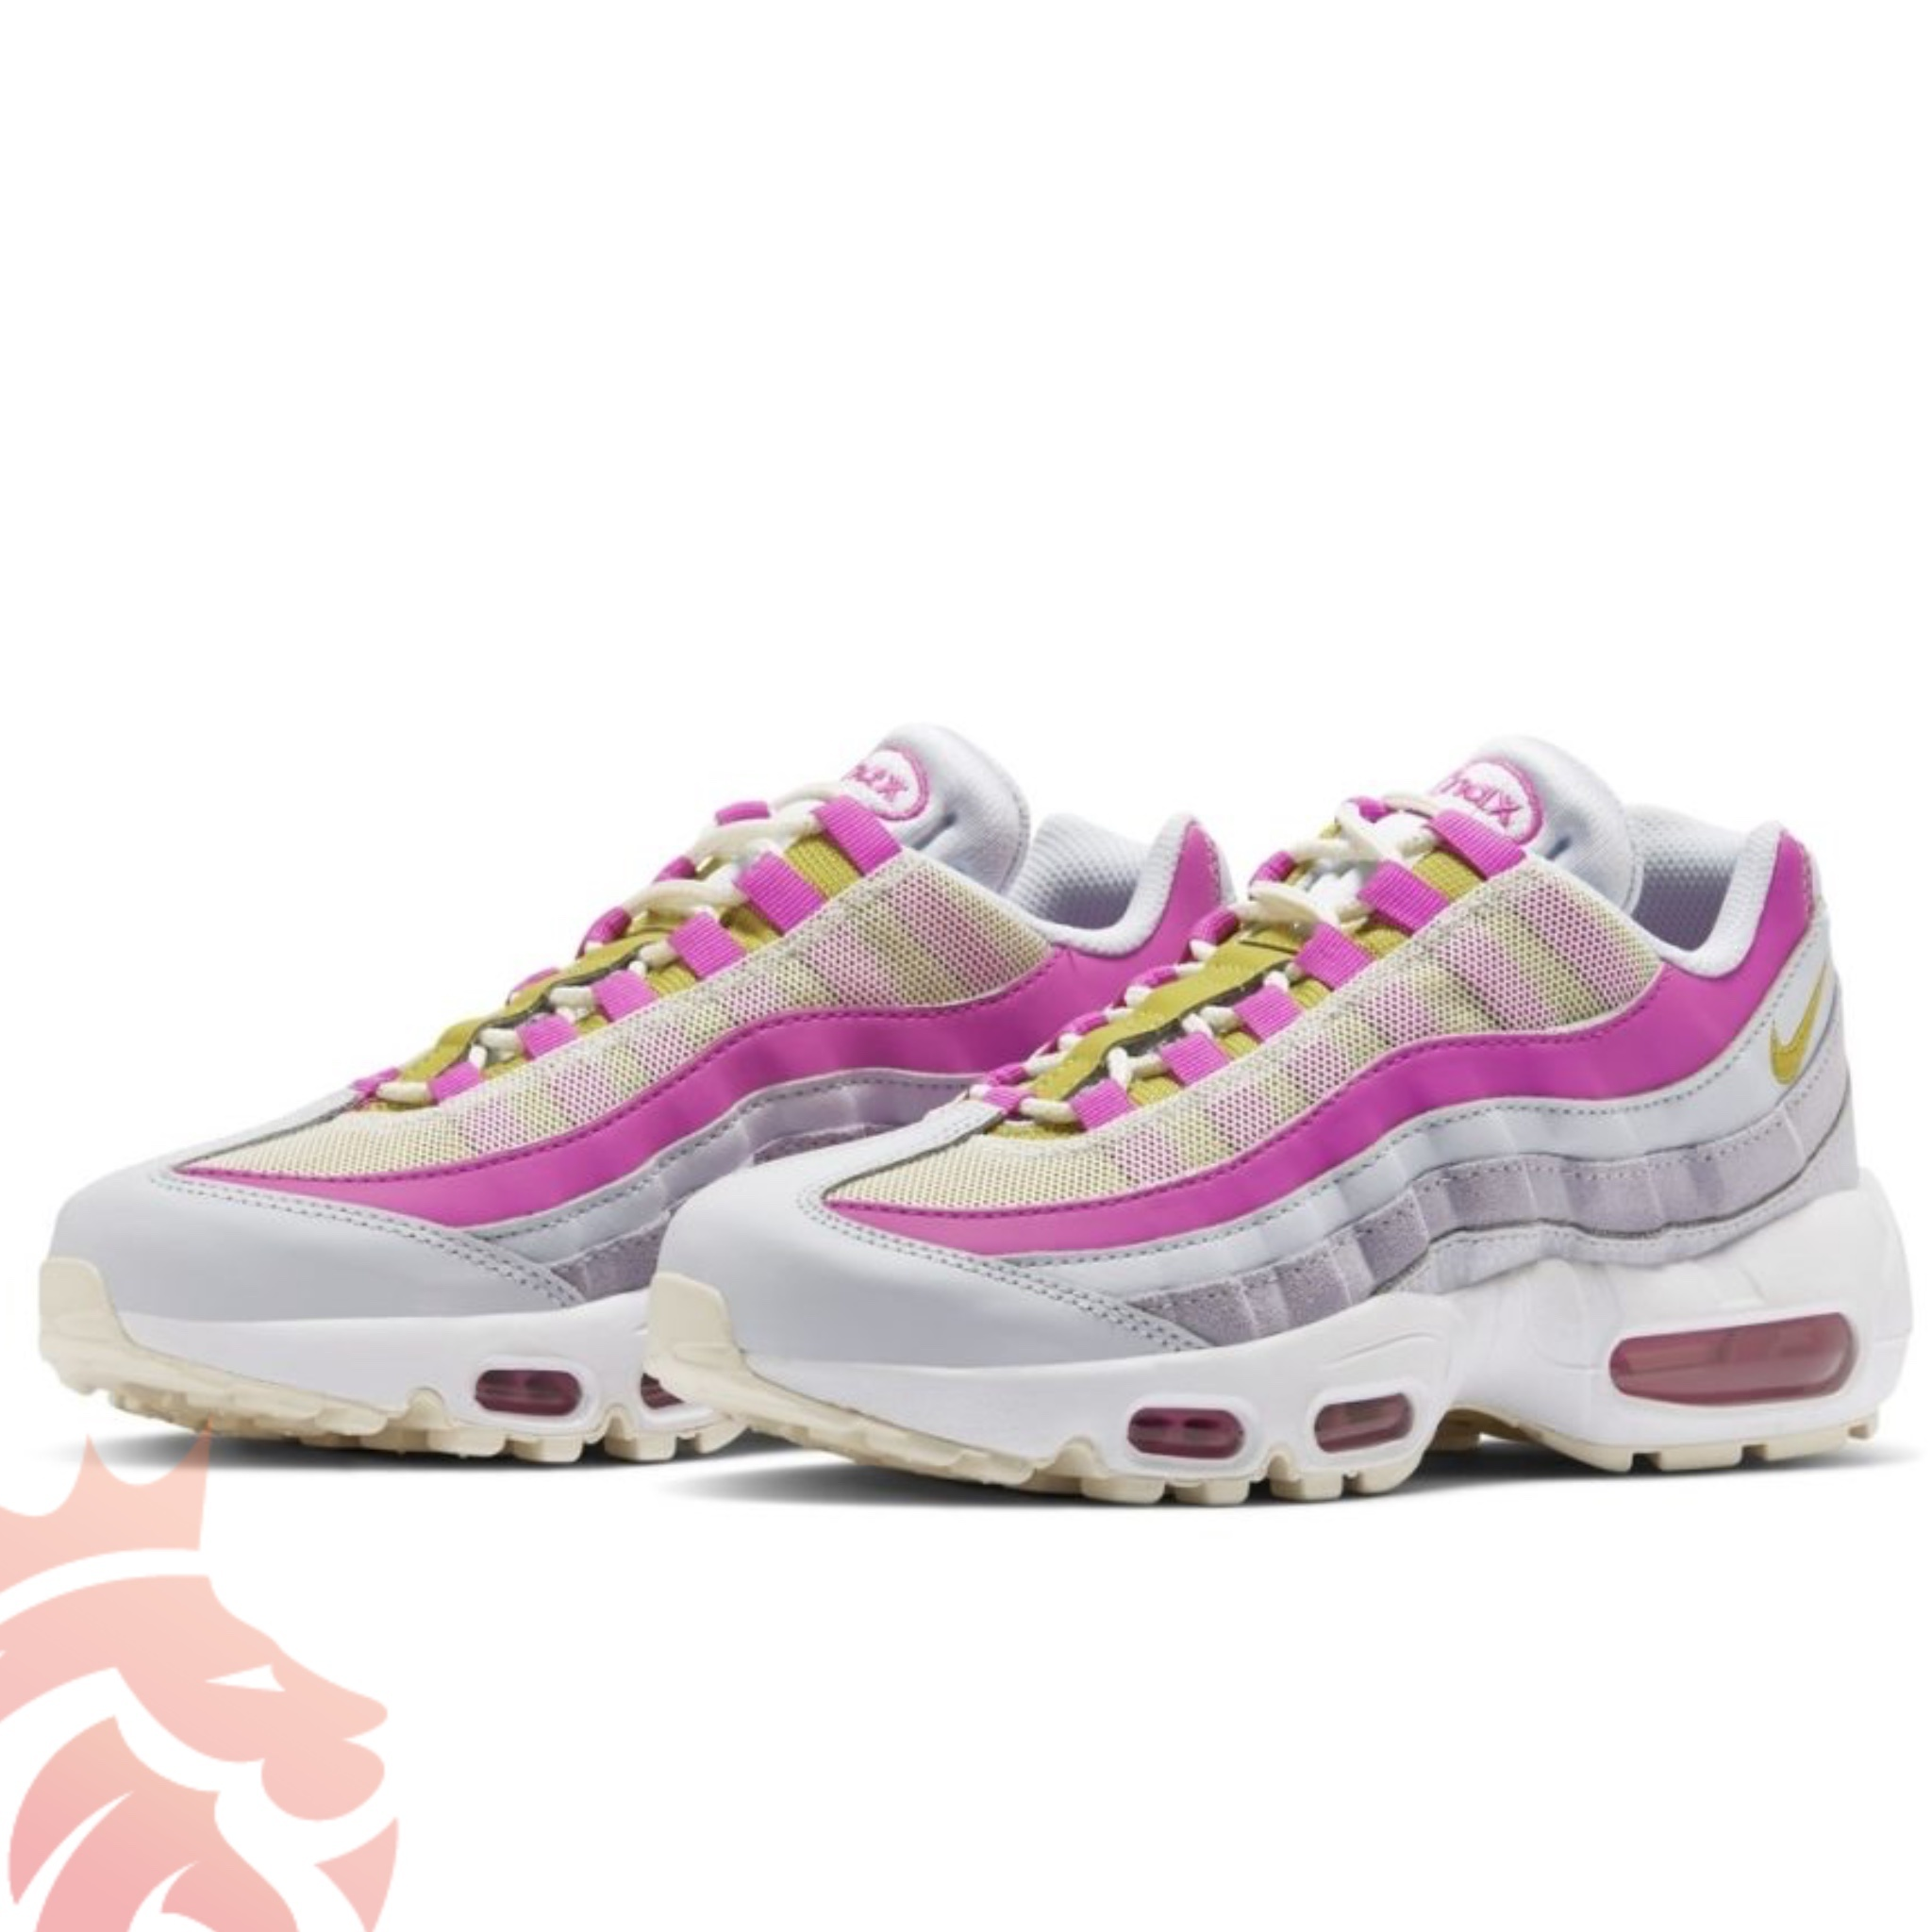 Nike Air Max 95 Highlighted in Violet-Pink